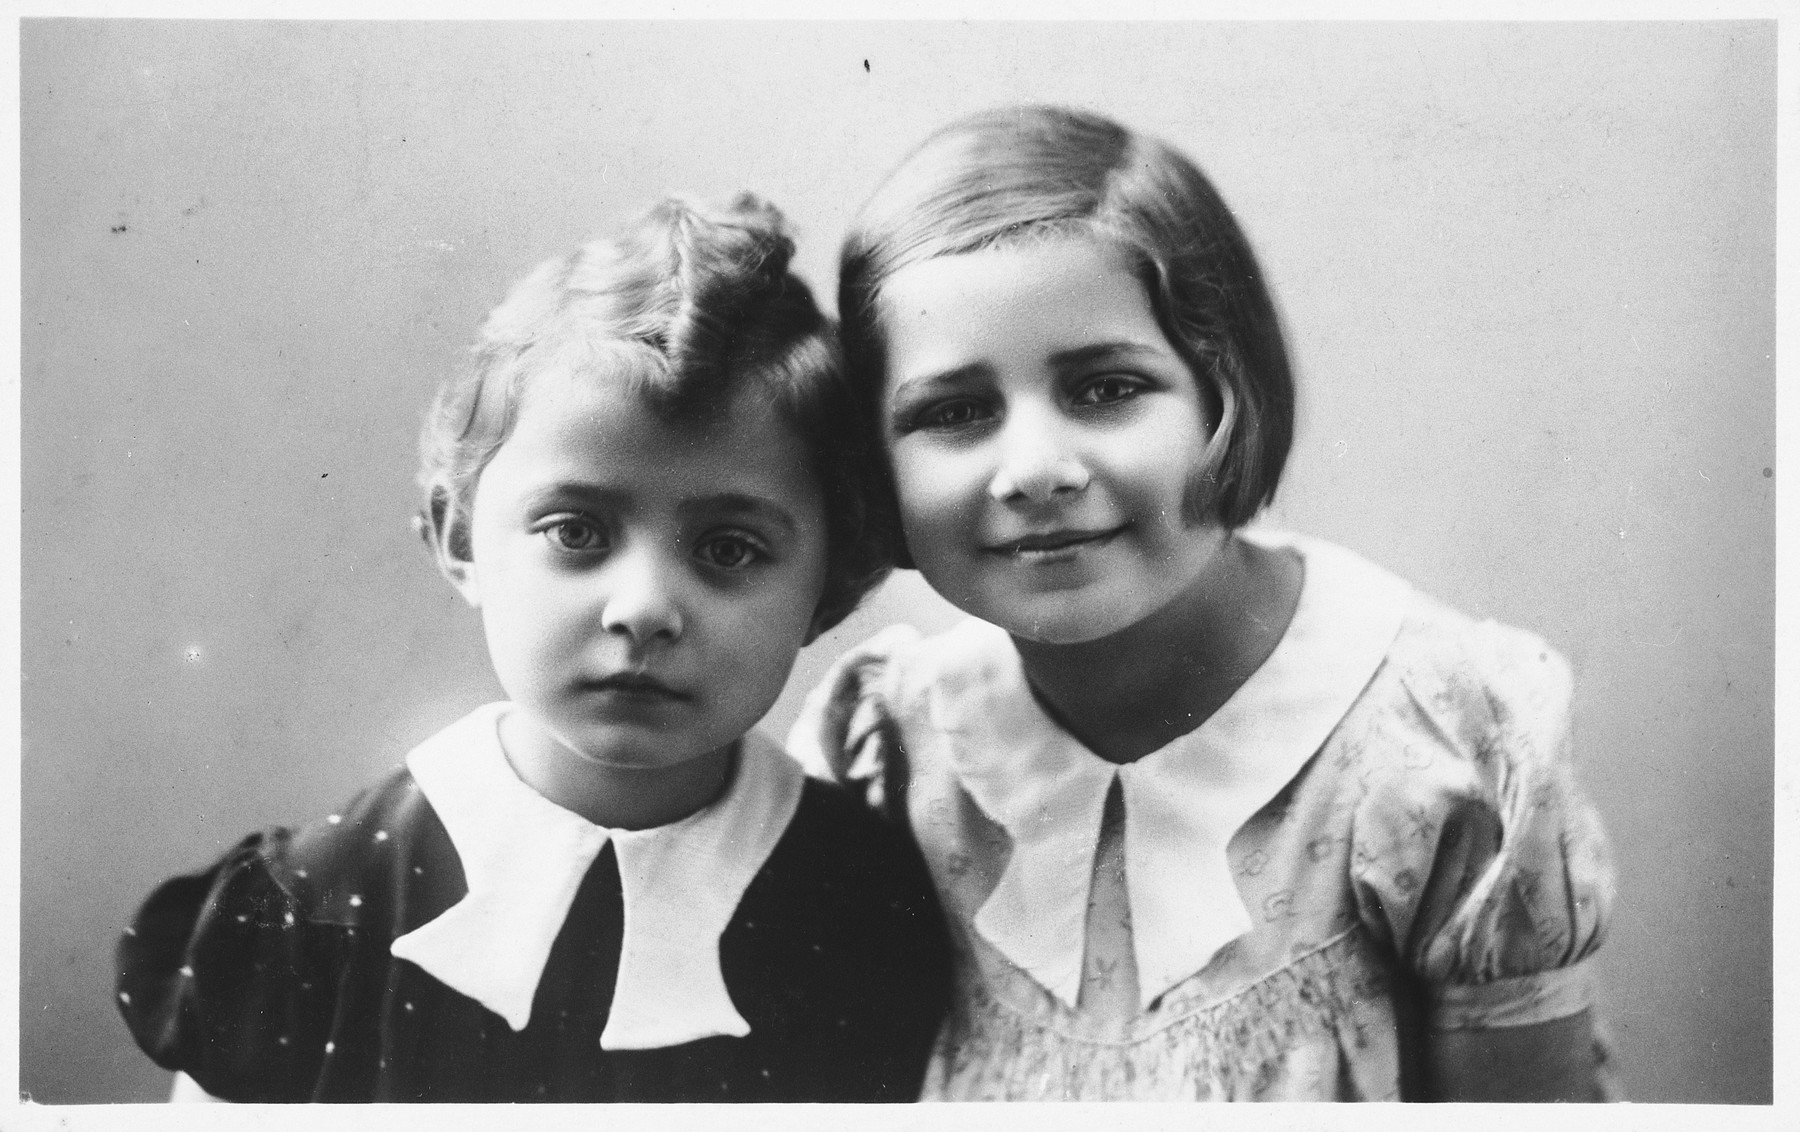 Studio portrait of two young Jewish sisters in Holice, Czechoslovakia.  Pictured are Gabriella and Katerina Frei.